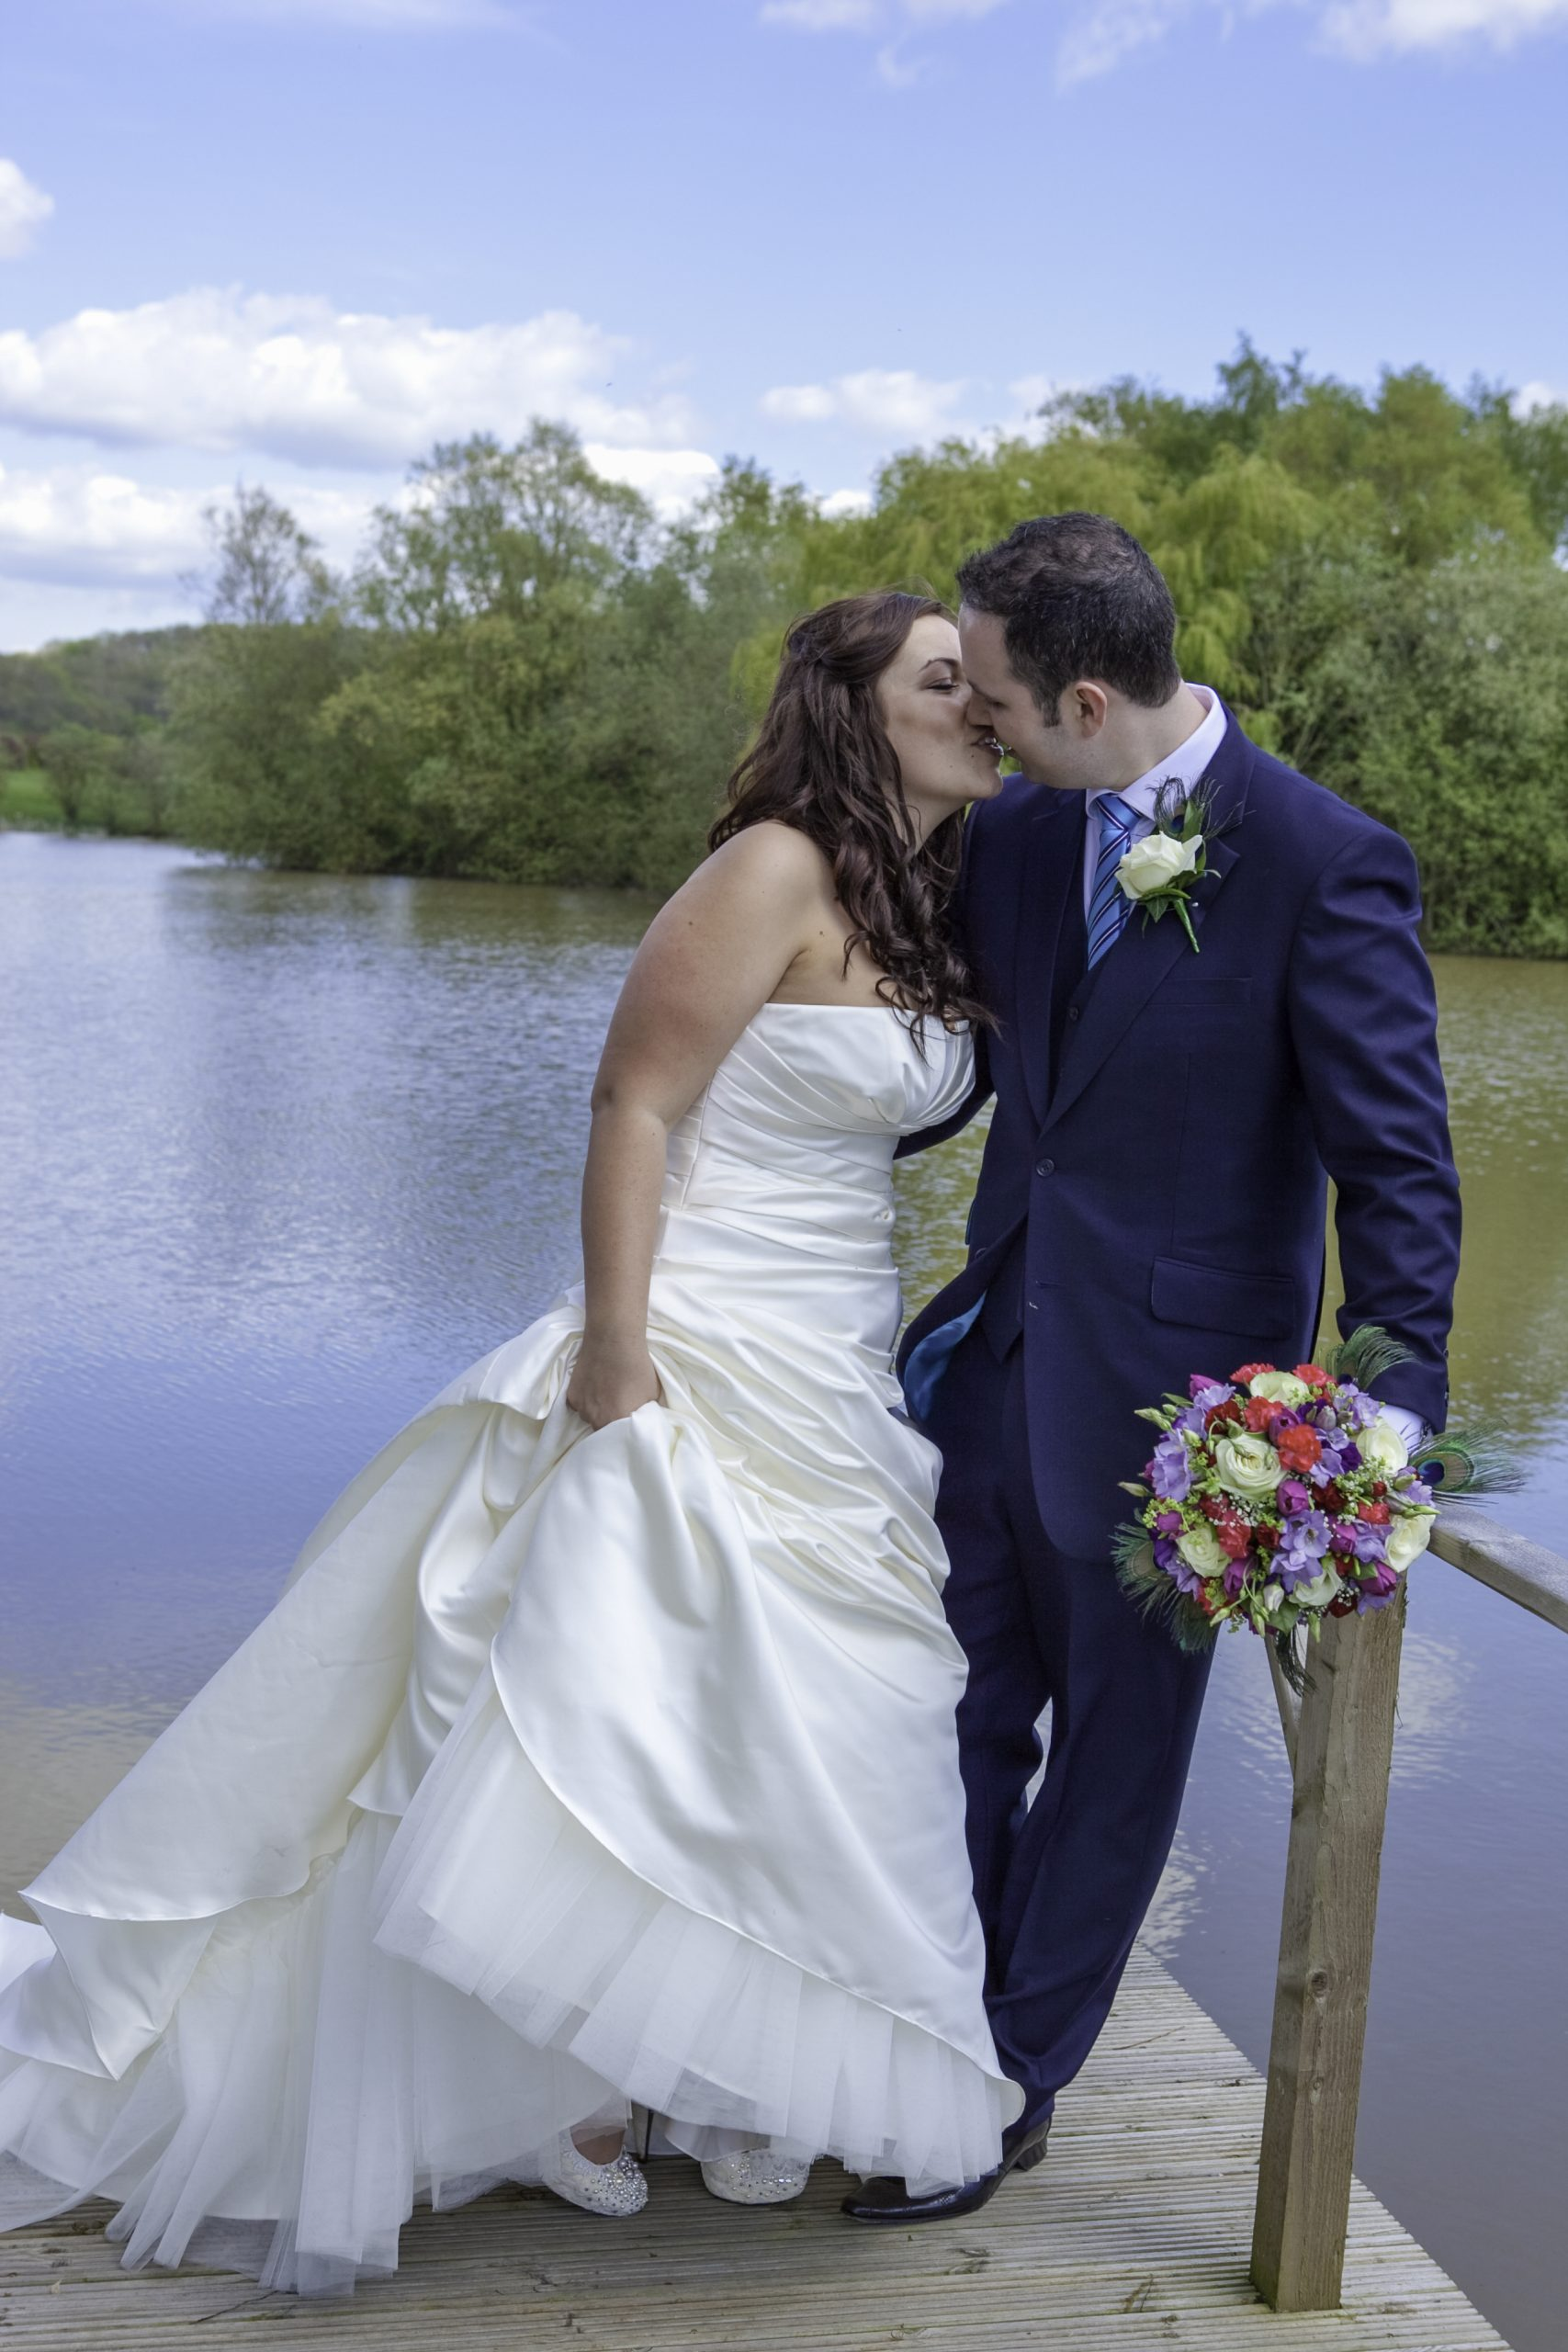 Wedding Photography, Wedding Photography, Bride & Groom Kissing, Tania Miller Photography